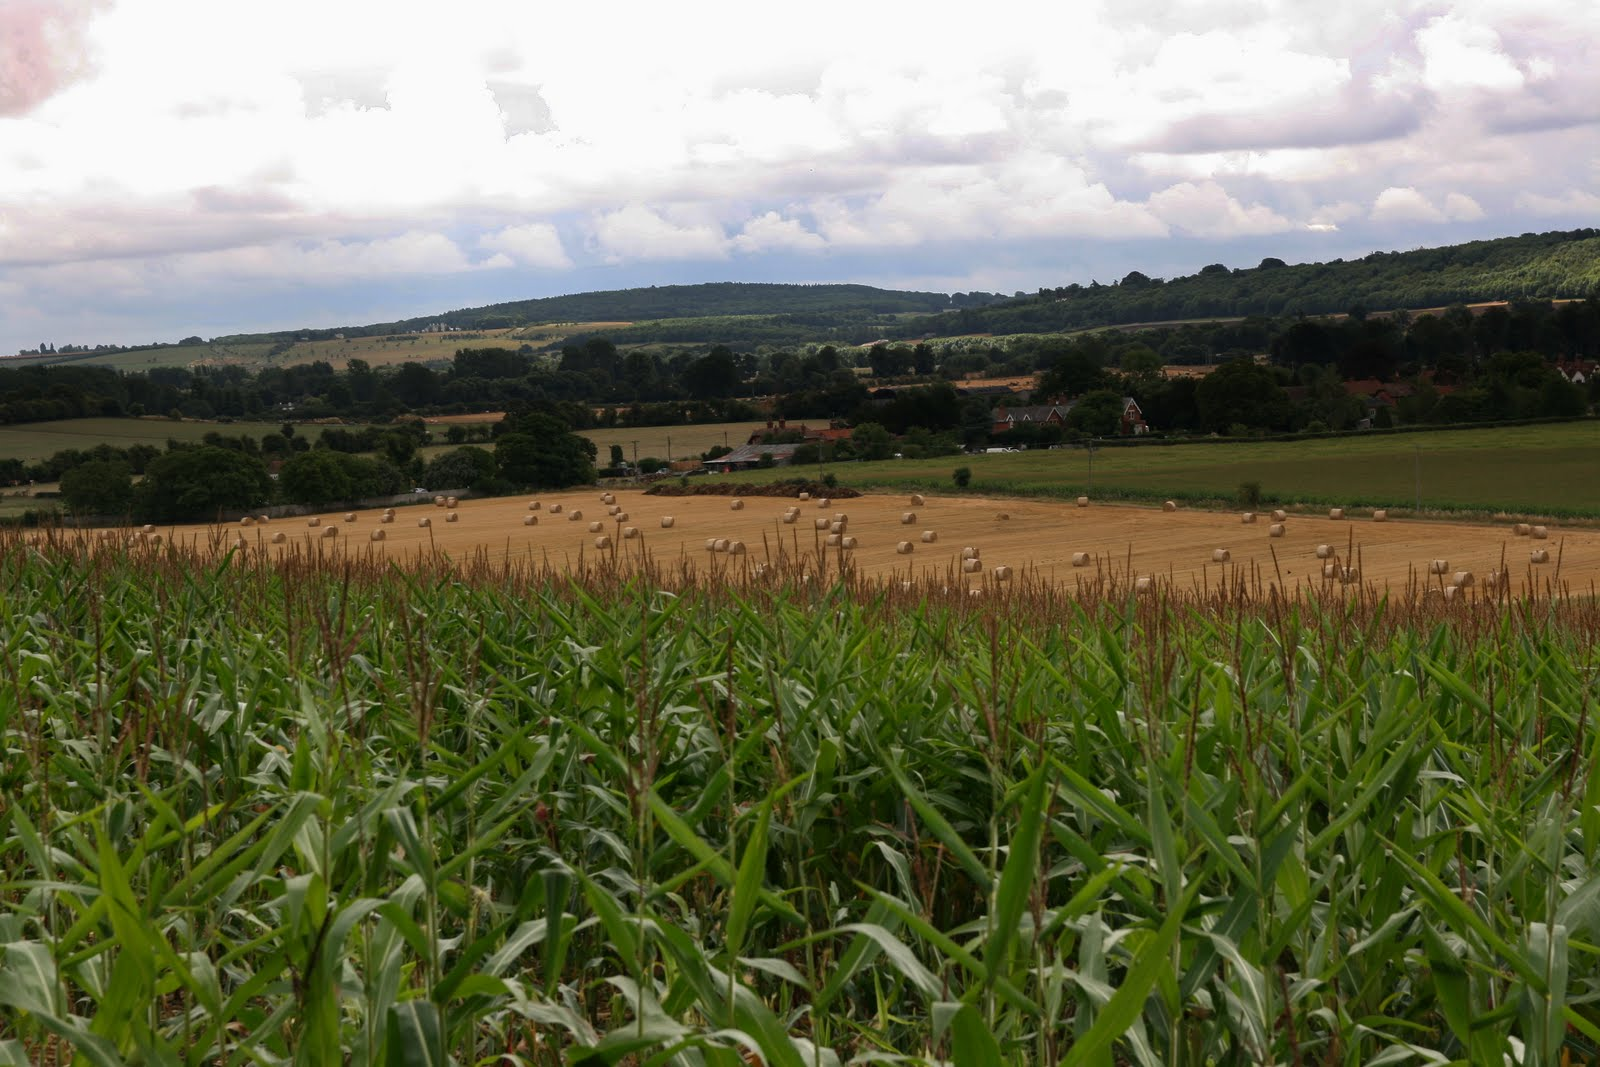 1008 002 Henley via Hambleden Circular, The Thames Valley, England Wheat and straw